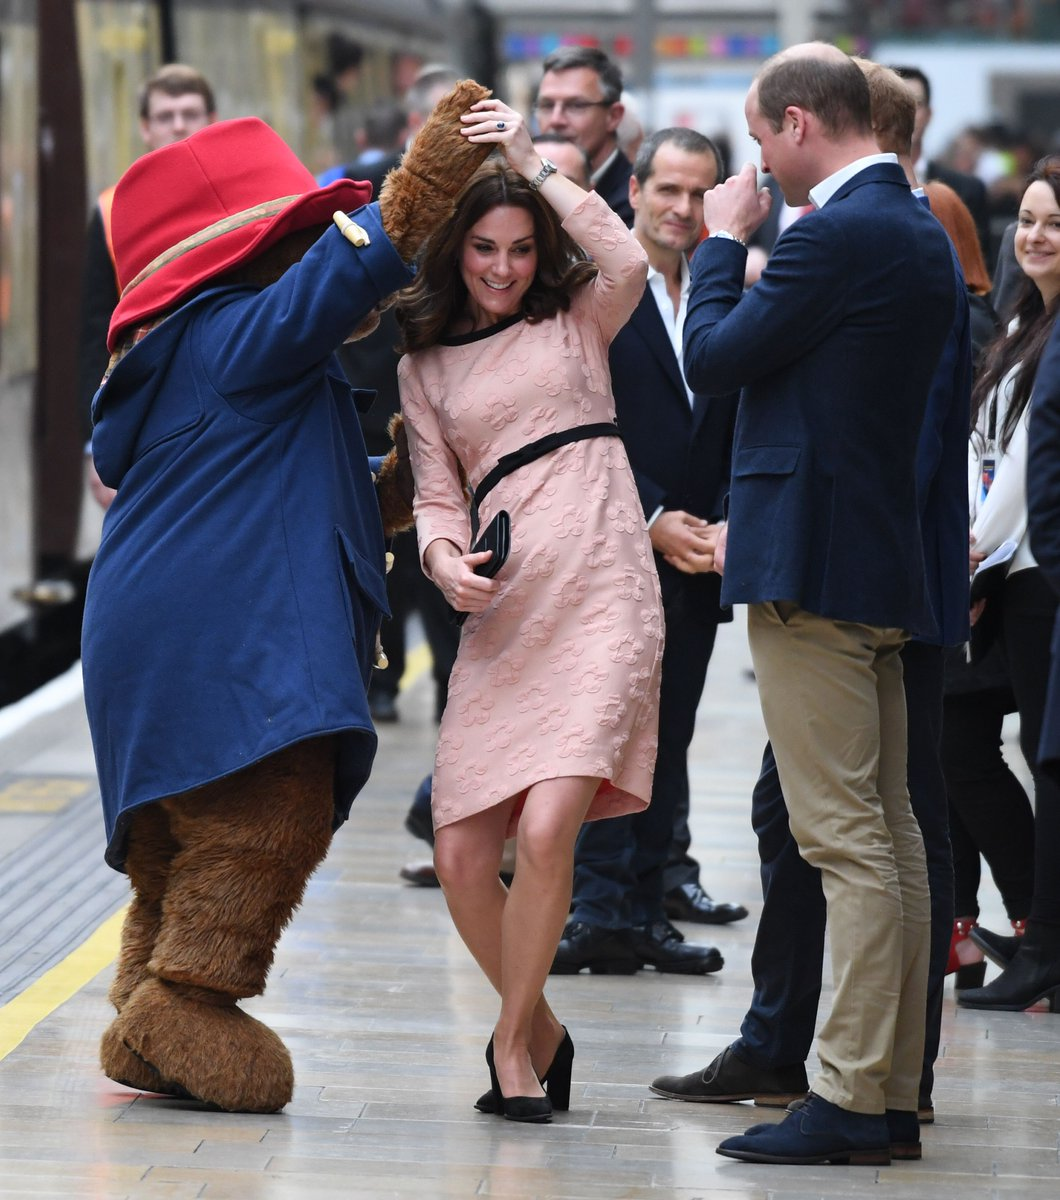 The Duchess of Cambridge is currently dancing with @paddingtonbear at Paddington station